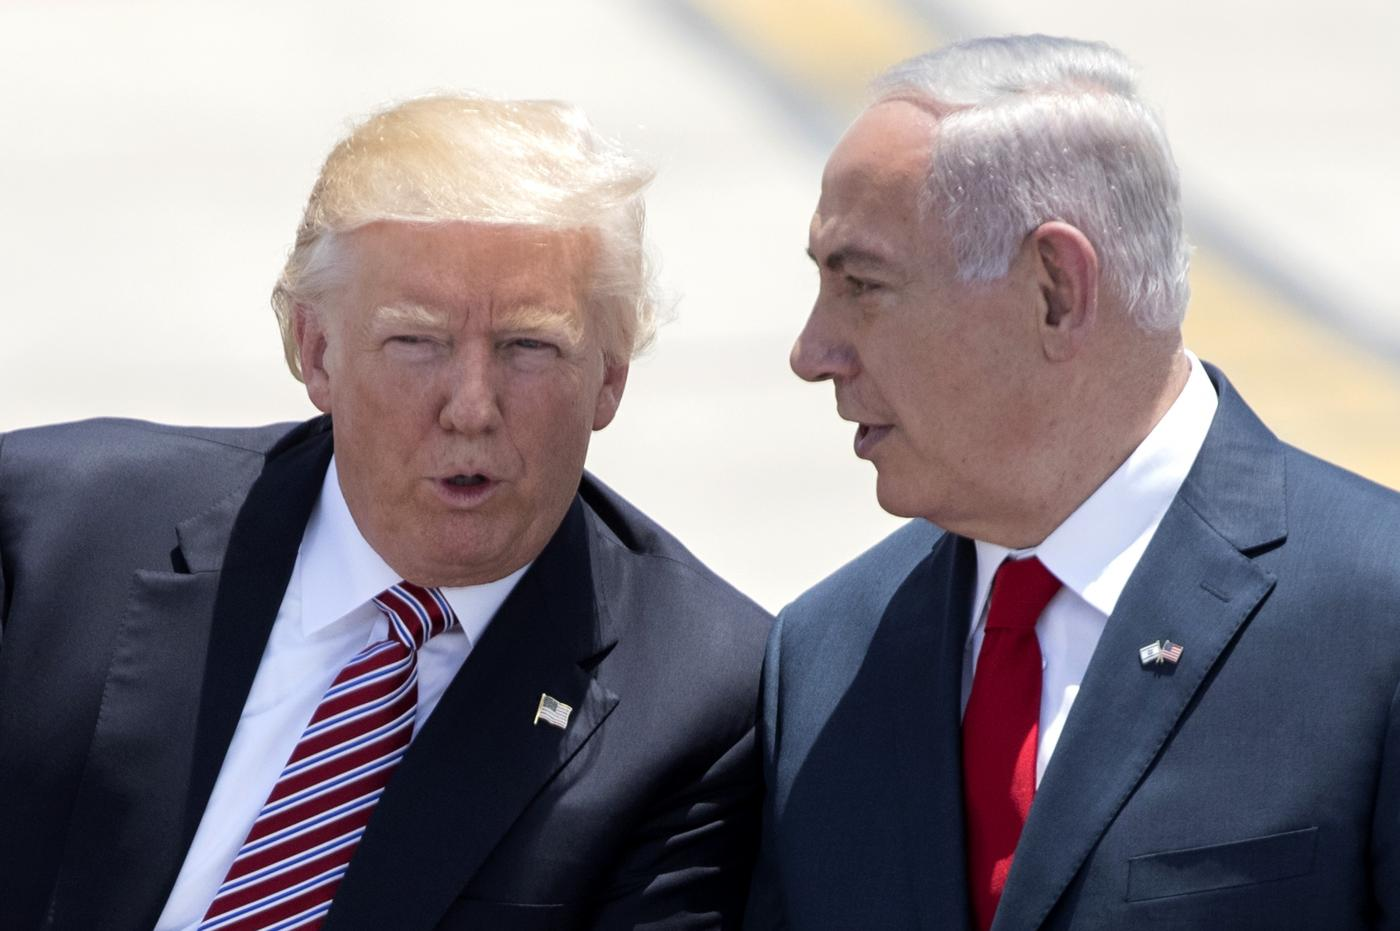 Trump's Golan Heights decision: Endorsing illegal annexation